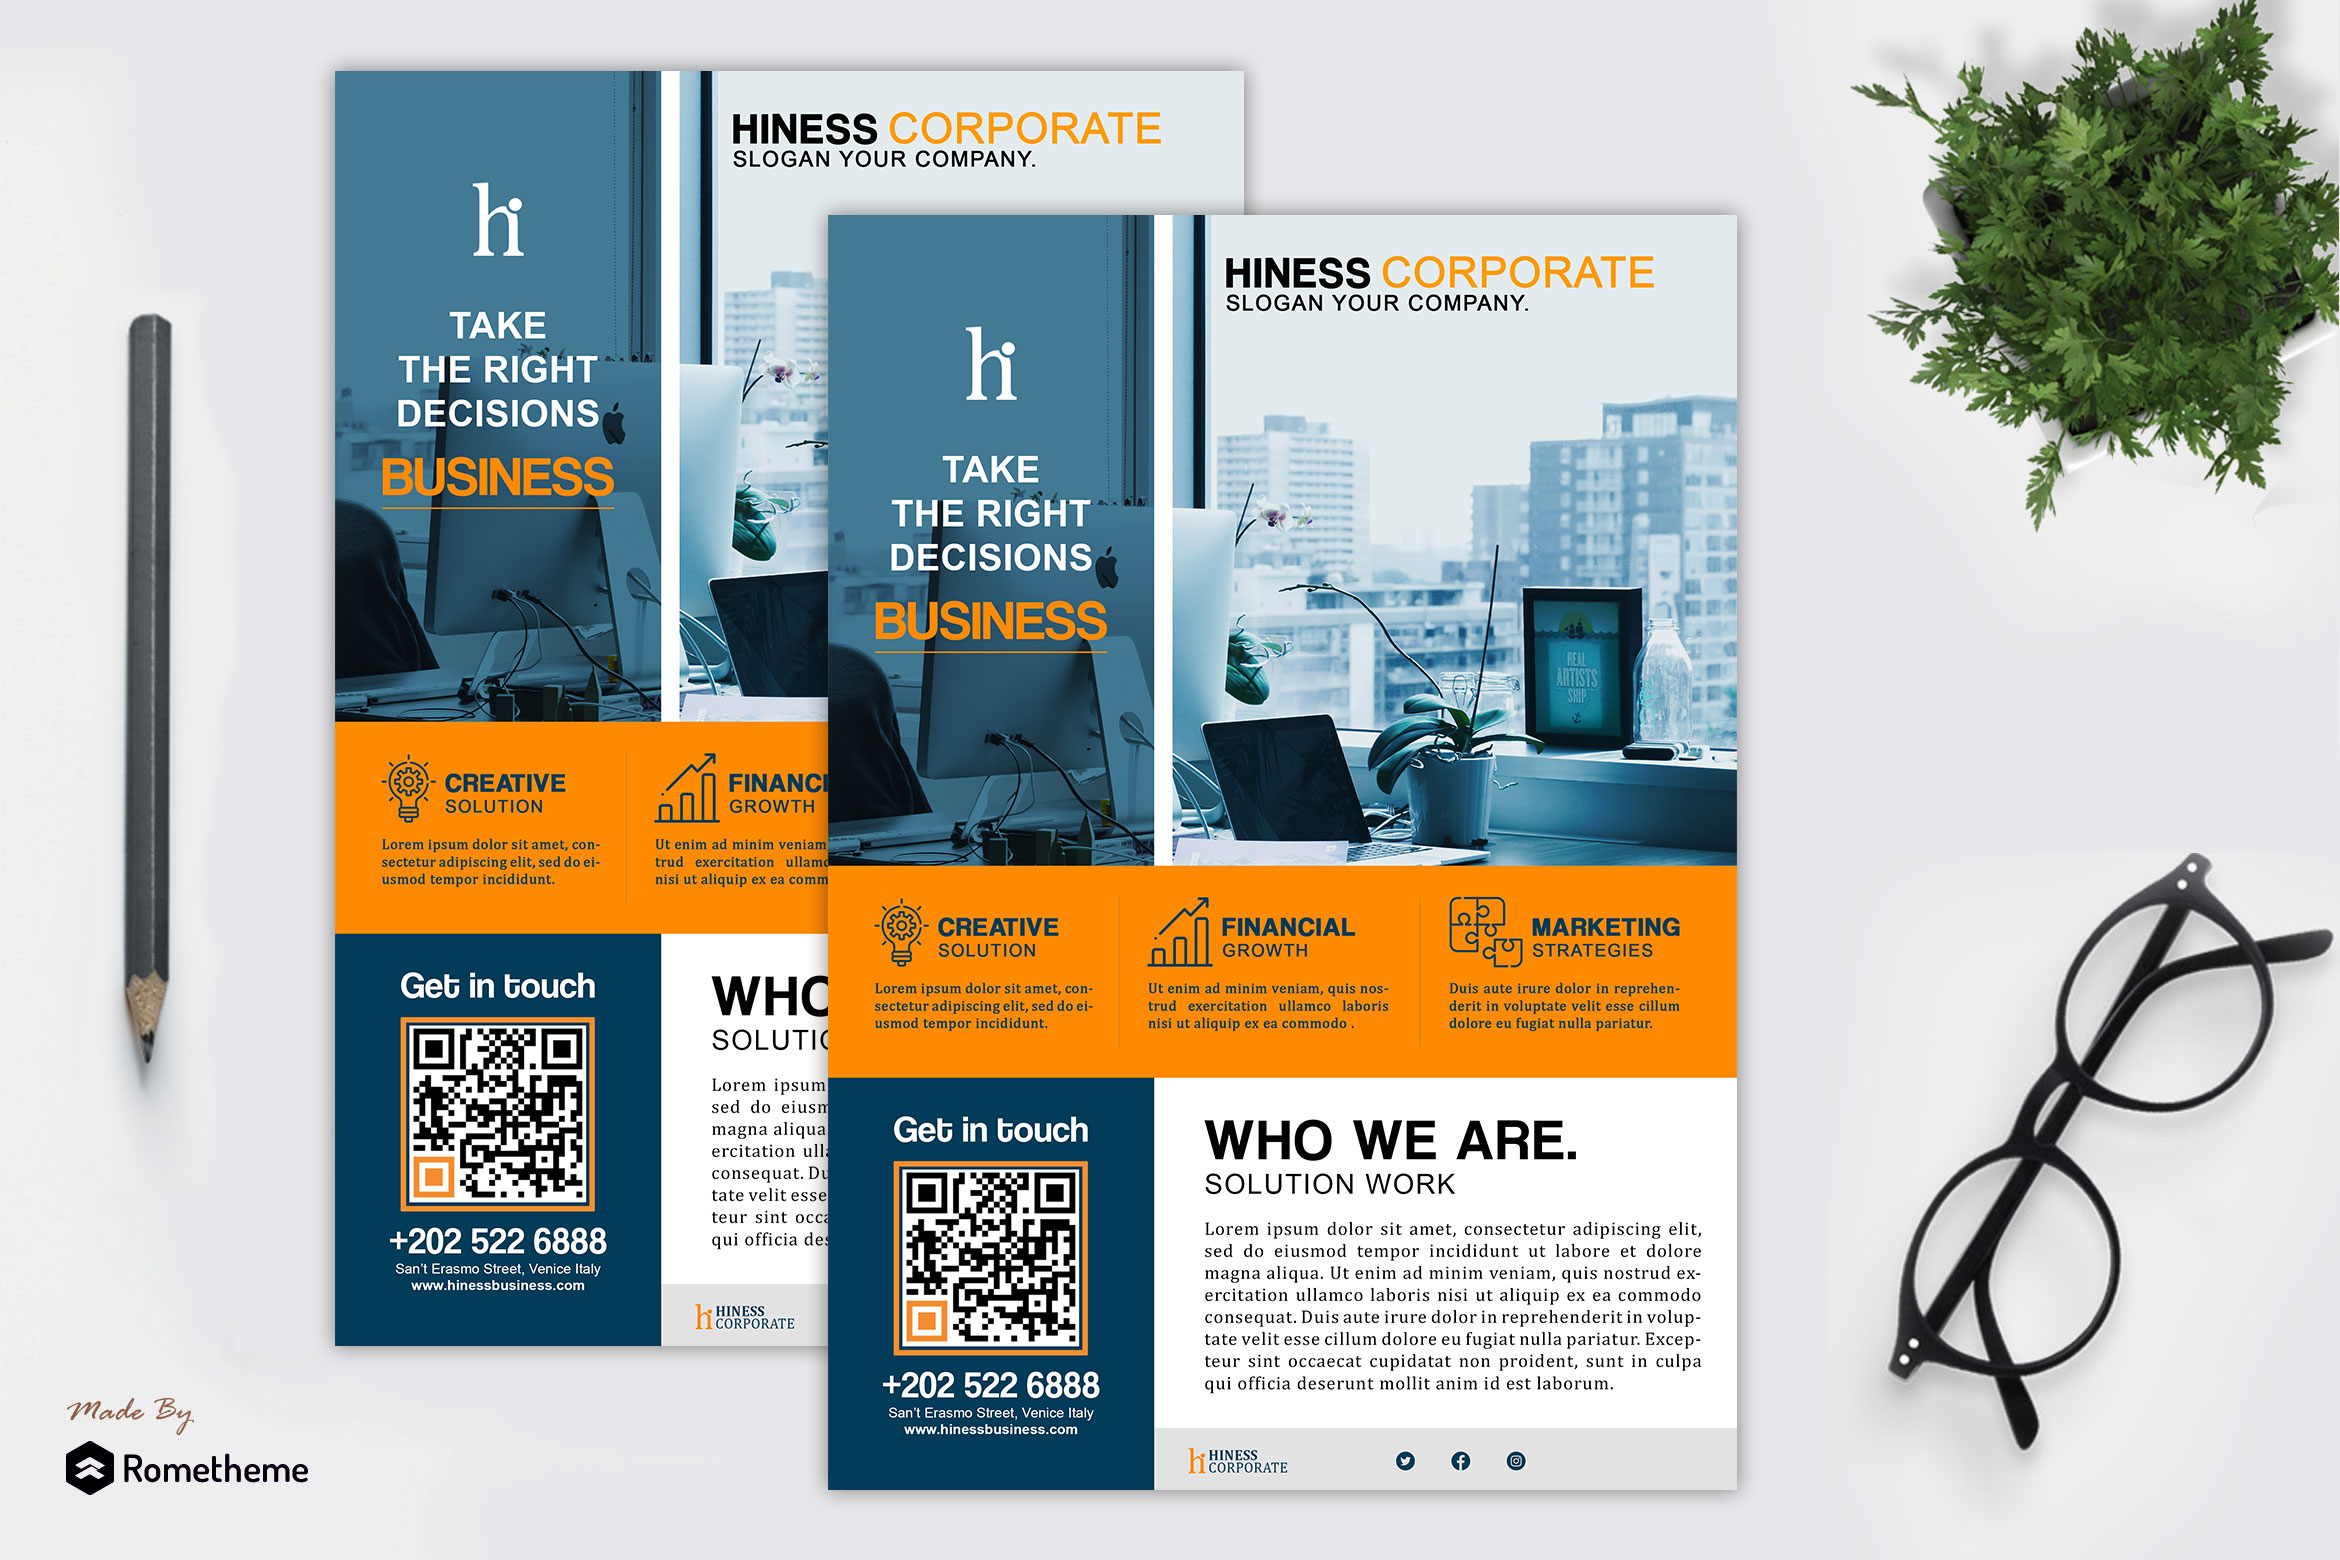 Hiness Corporate Flyer Template example image 1